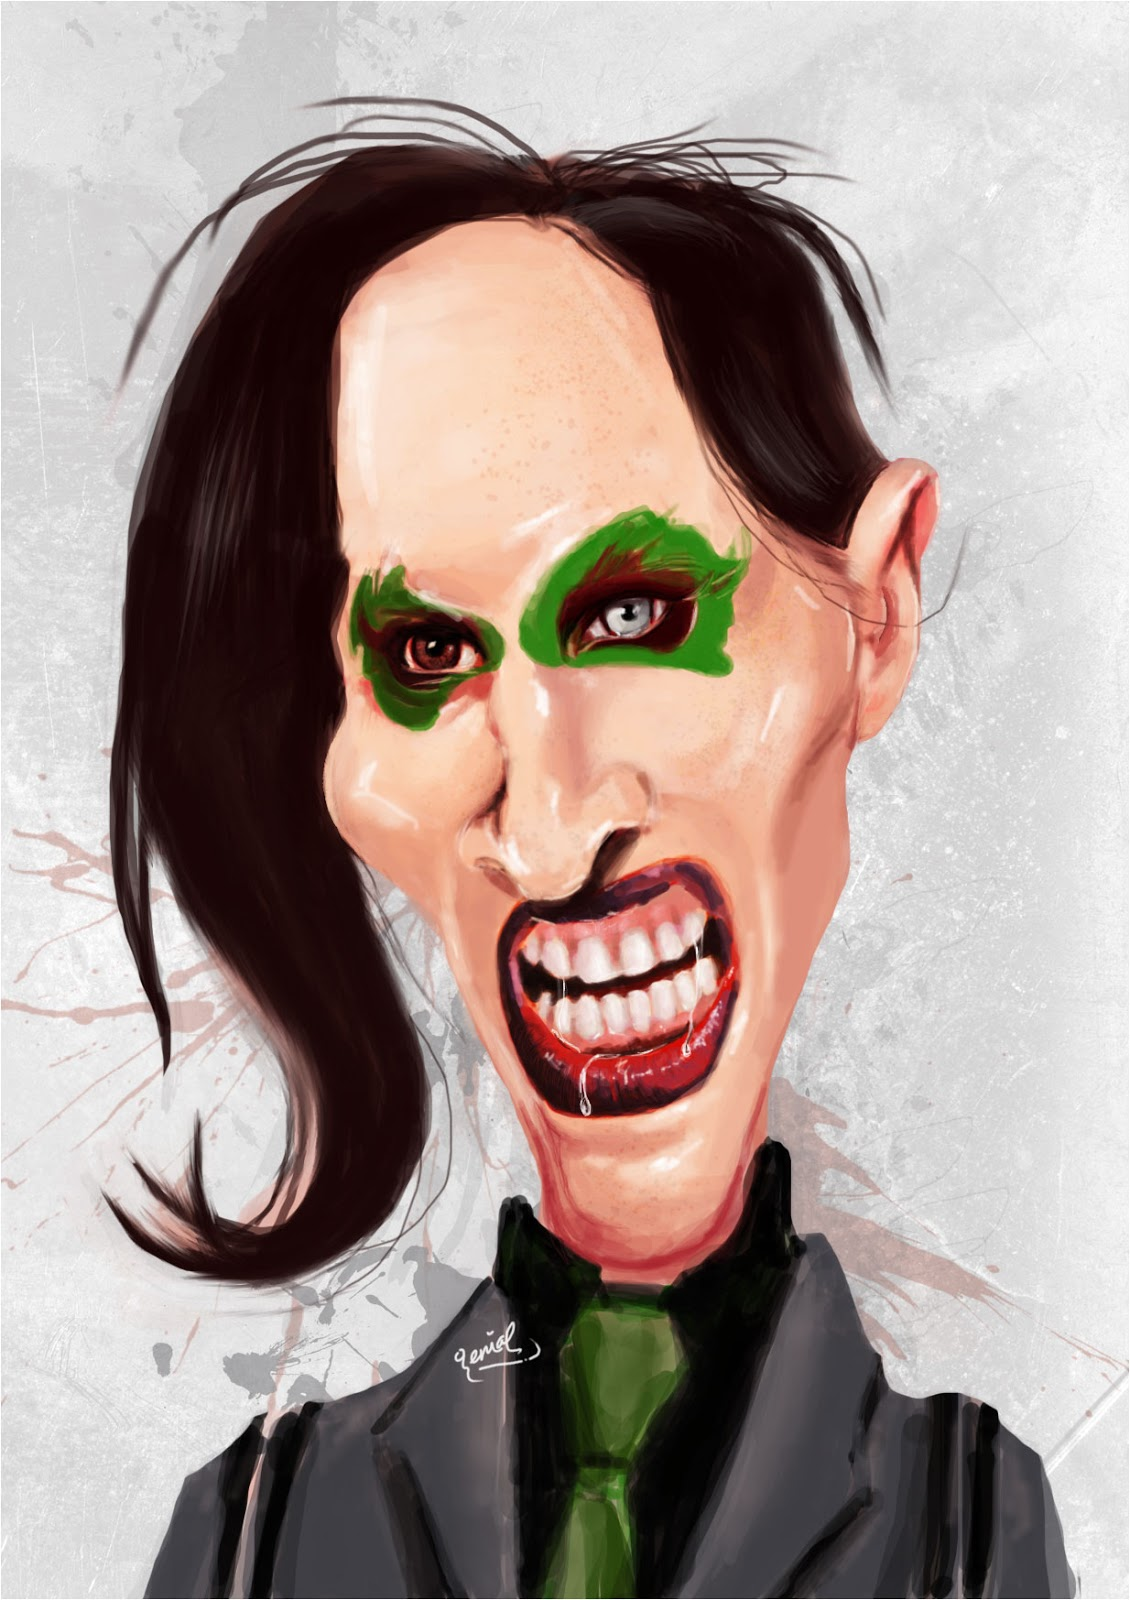 Digital Painting Marylin Manson Belajar Photoshop